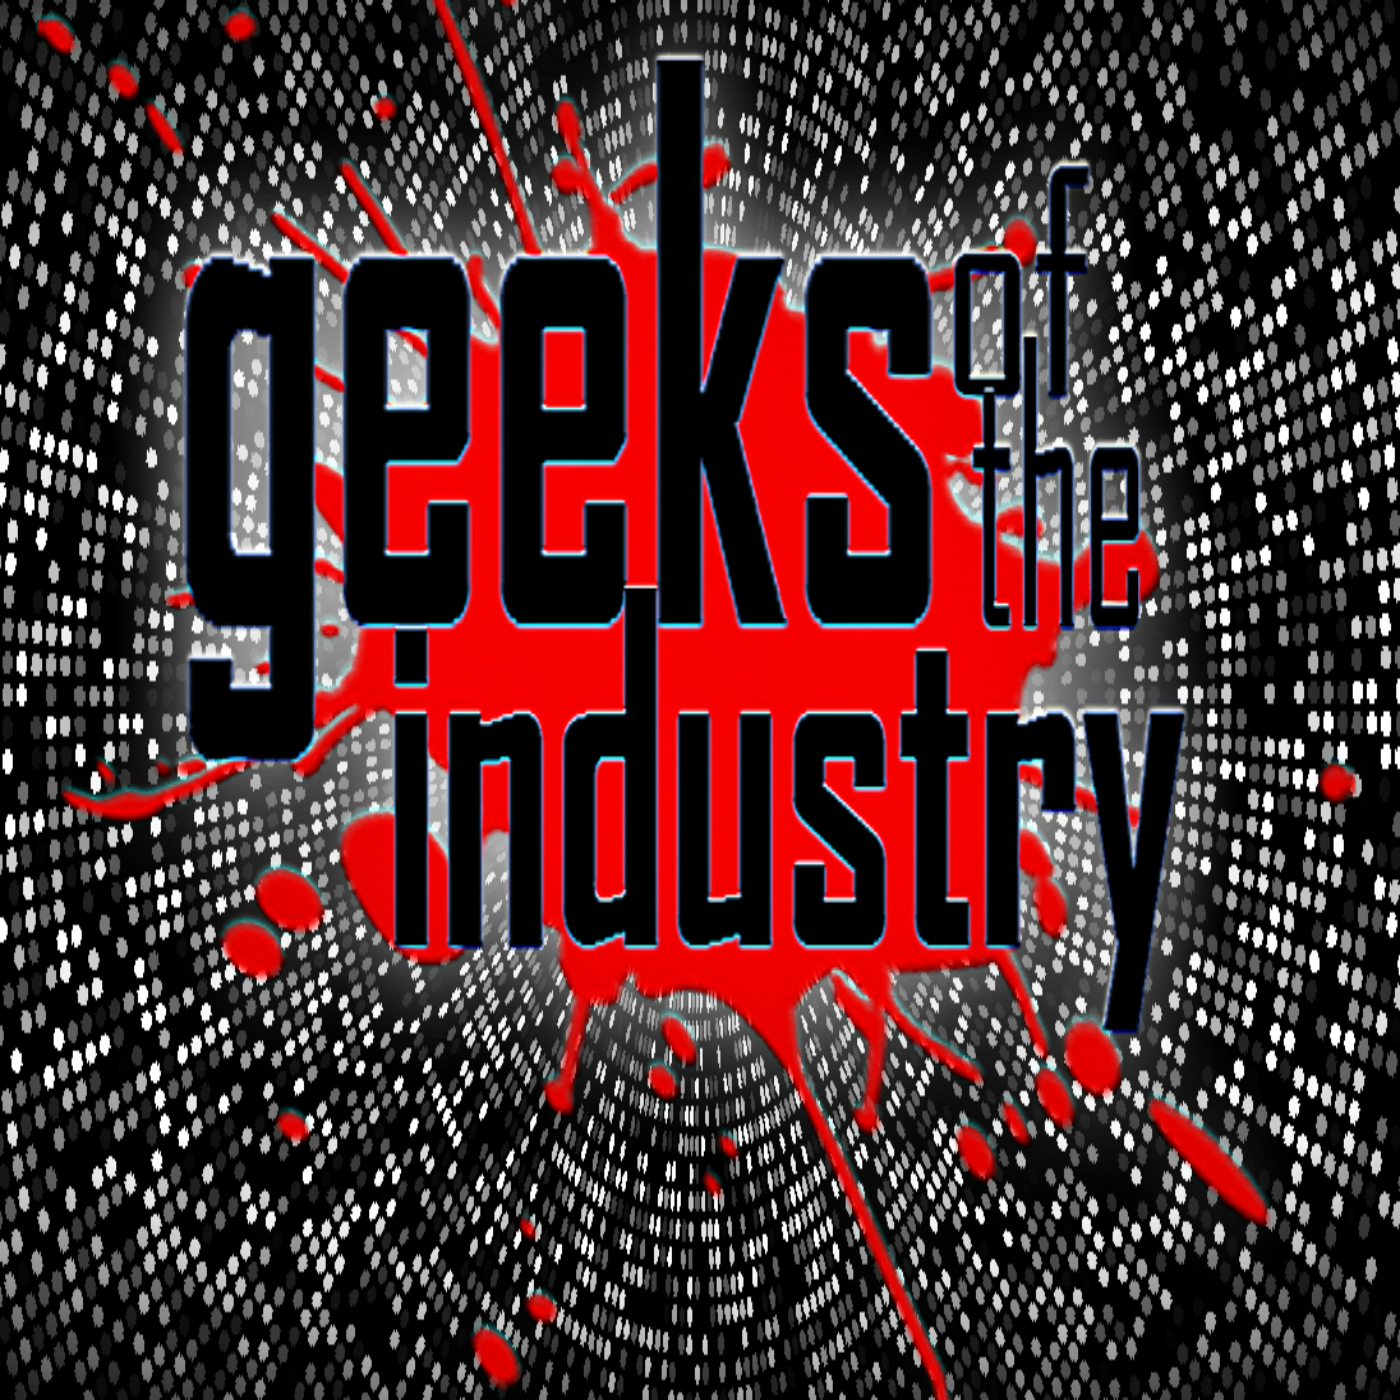 Geeks of the Industry - Geeks of the Industry